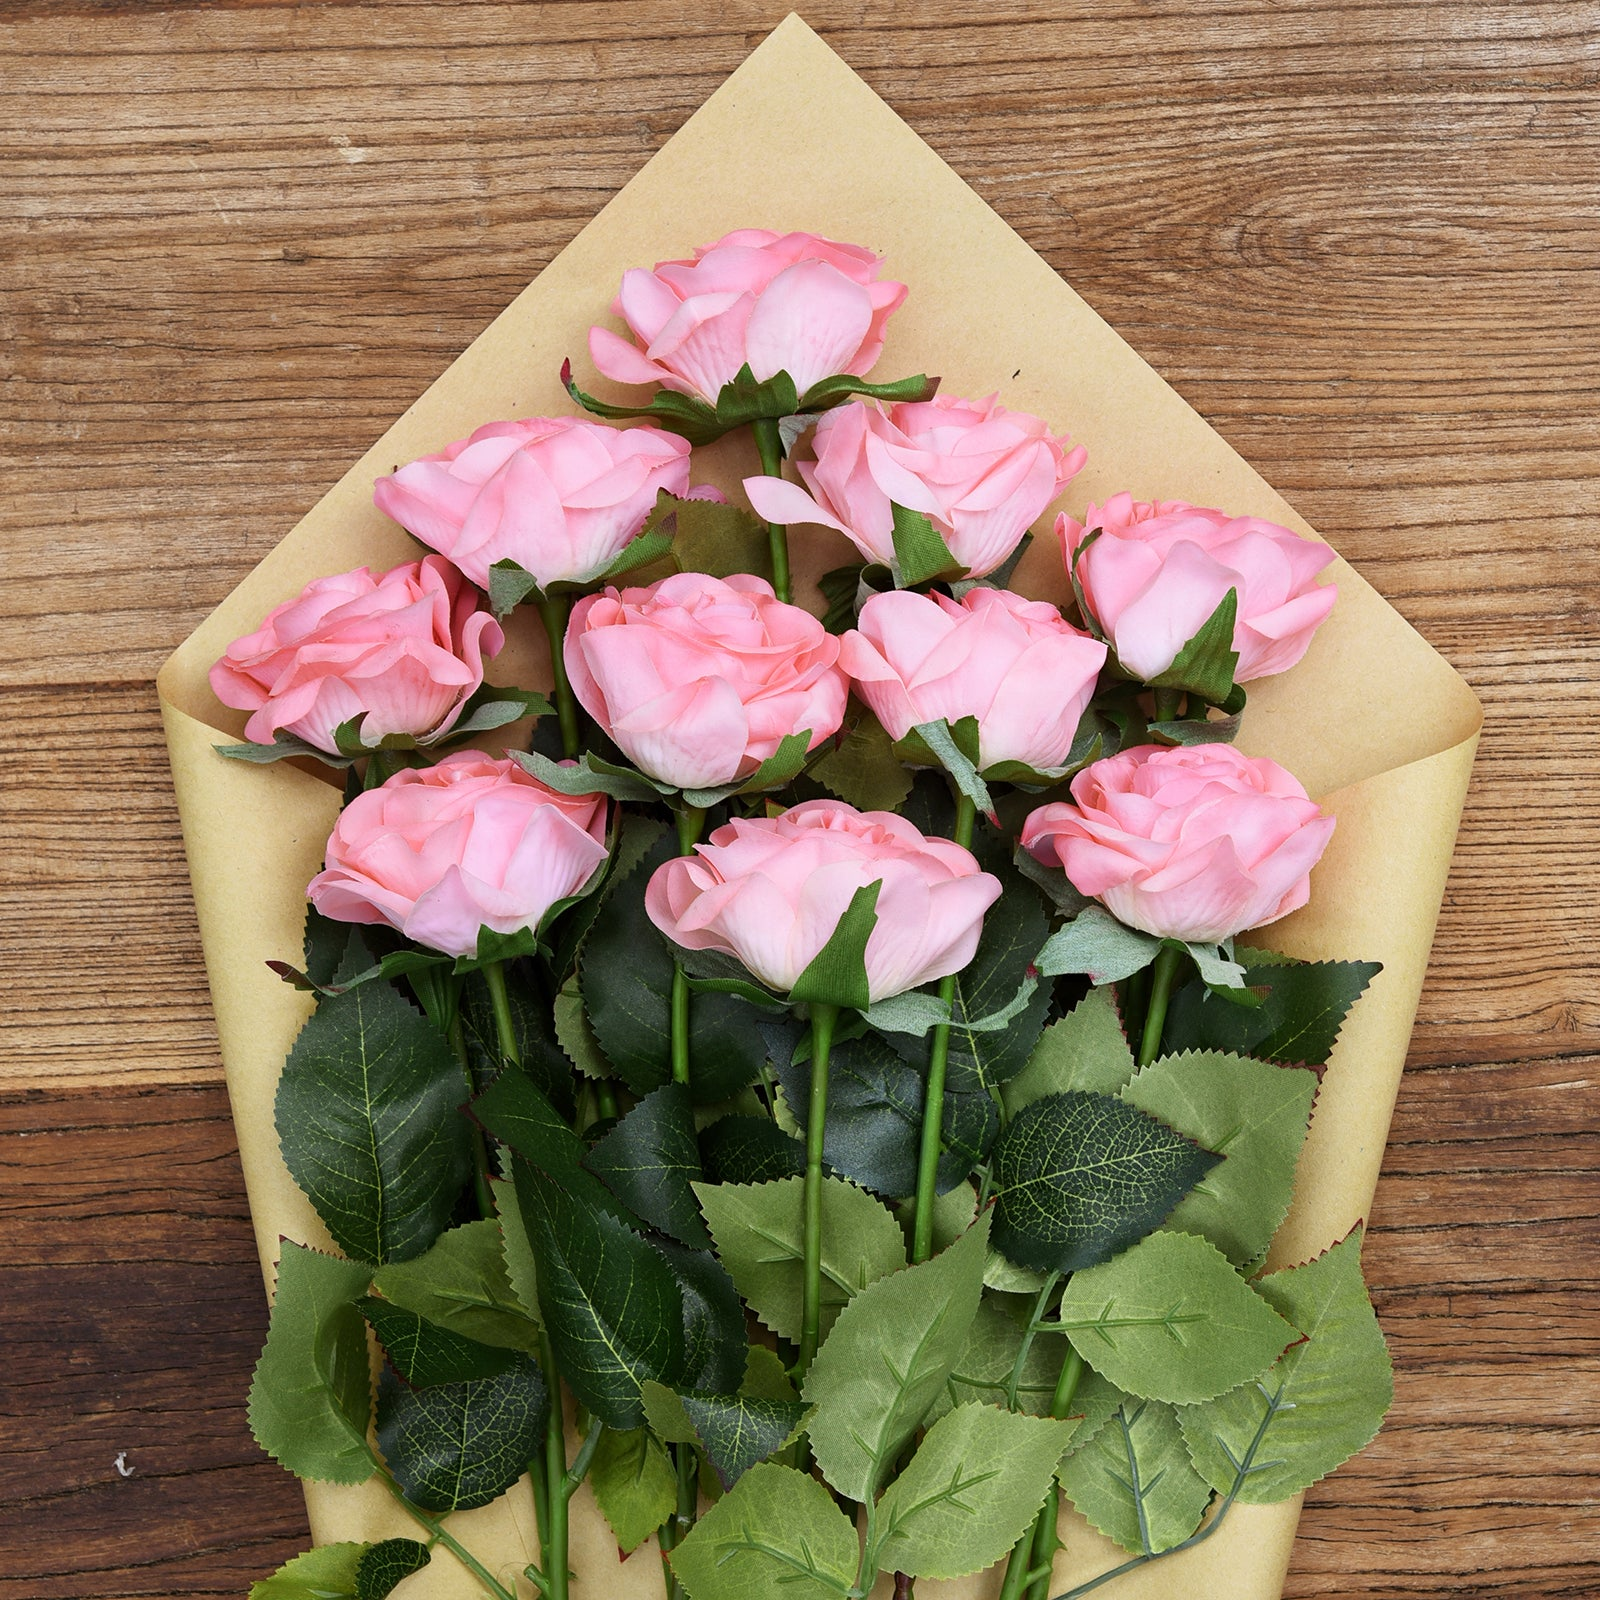 Pink Real Touch Silk Artificial Flowers 'Petals Feel and Look like Fresh Roses 10 Stems